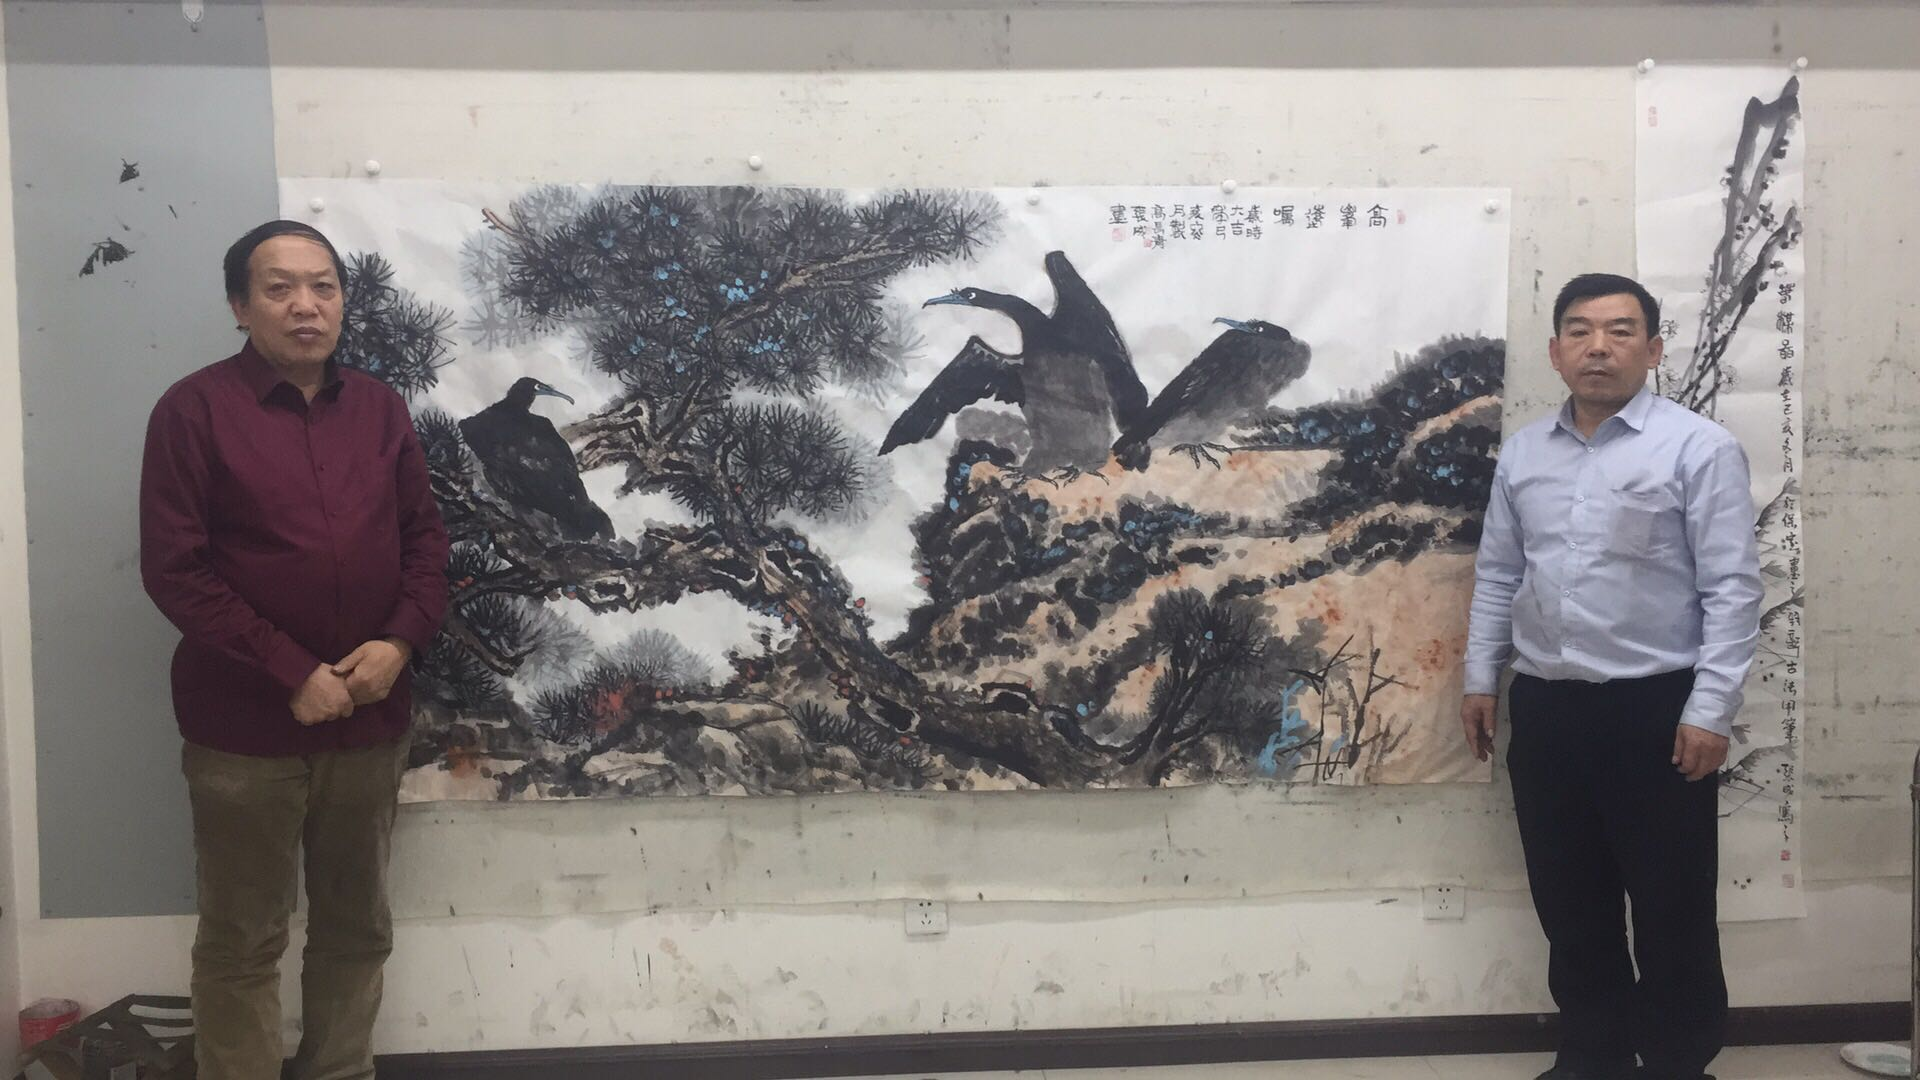 Zhang Cheng, a famous painter, and Gao Changqing, a famous painter, are far away from the peak of their joint creation